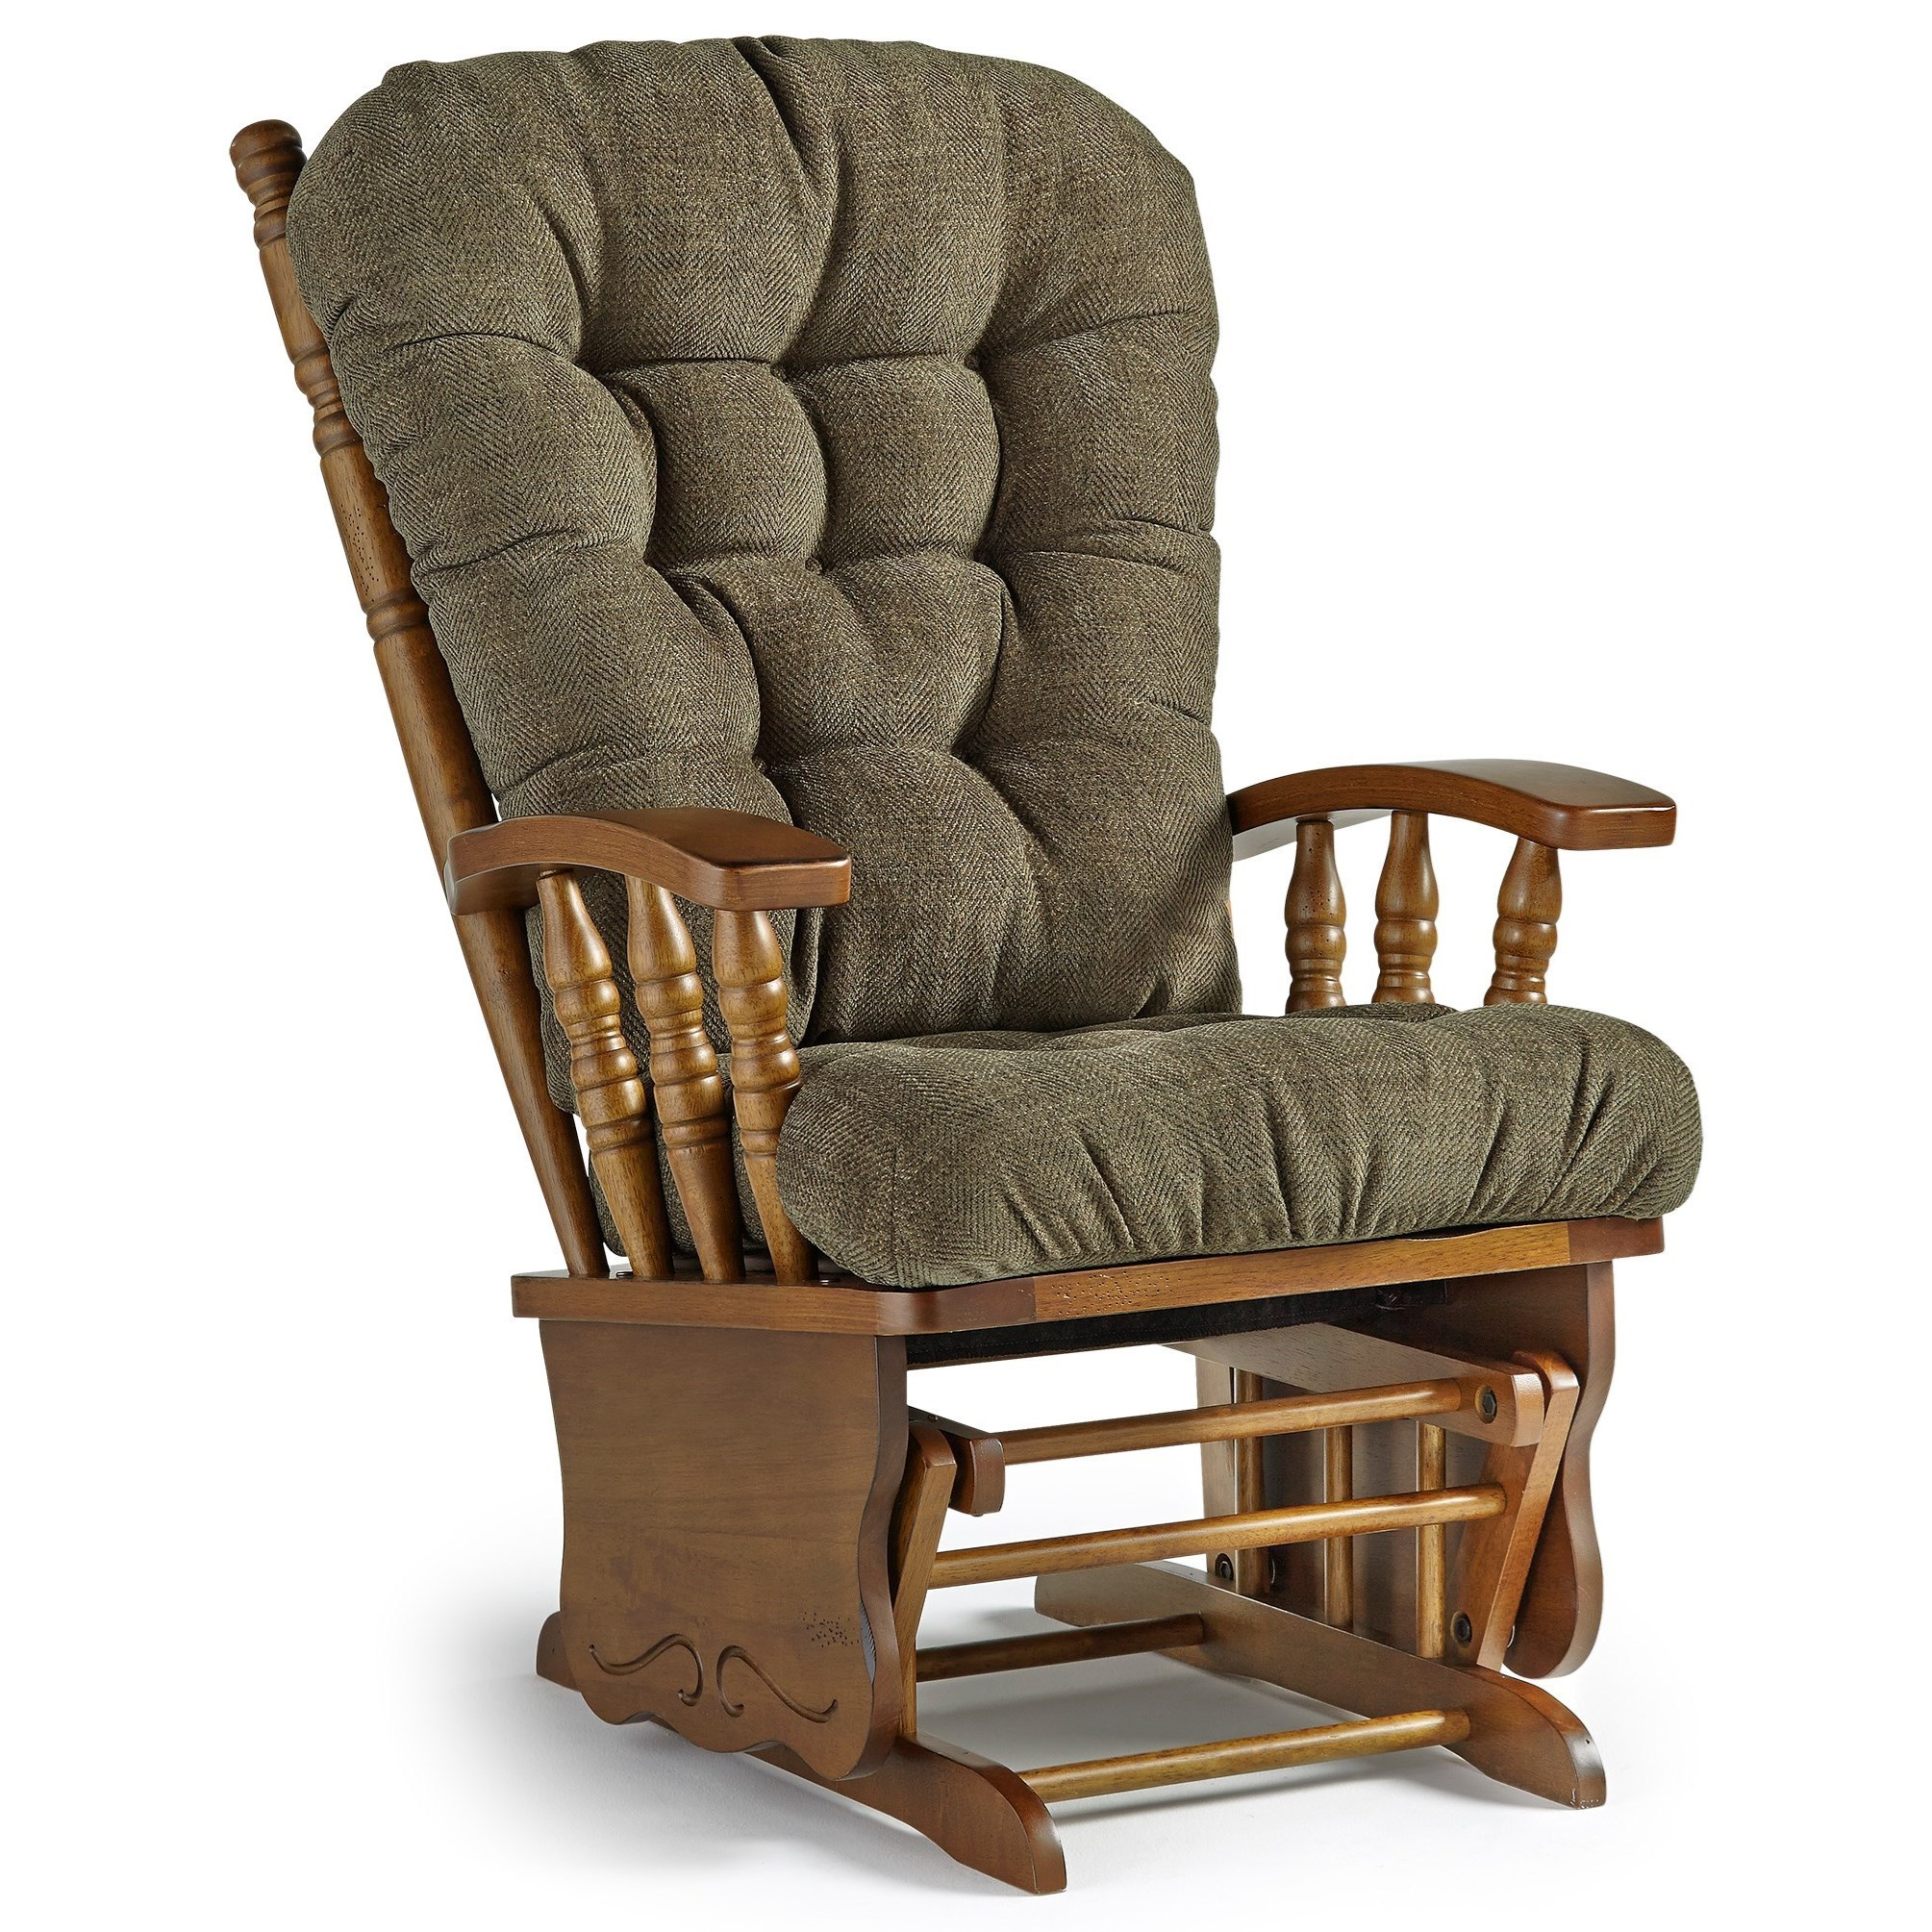 Glider Rockers 0143711 Henley Glider Rocker By Vendor 411